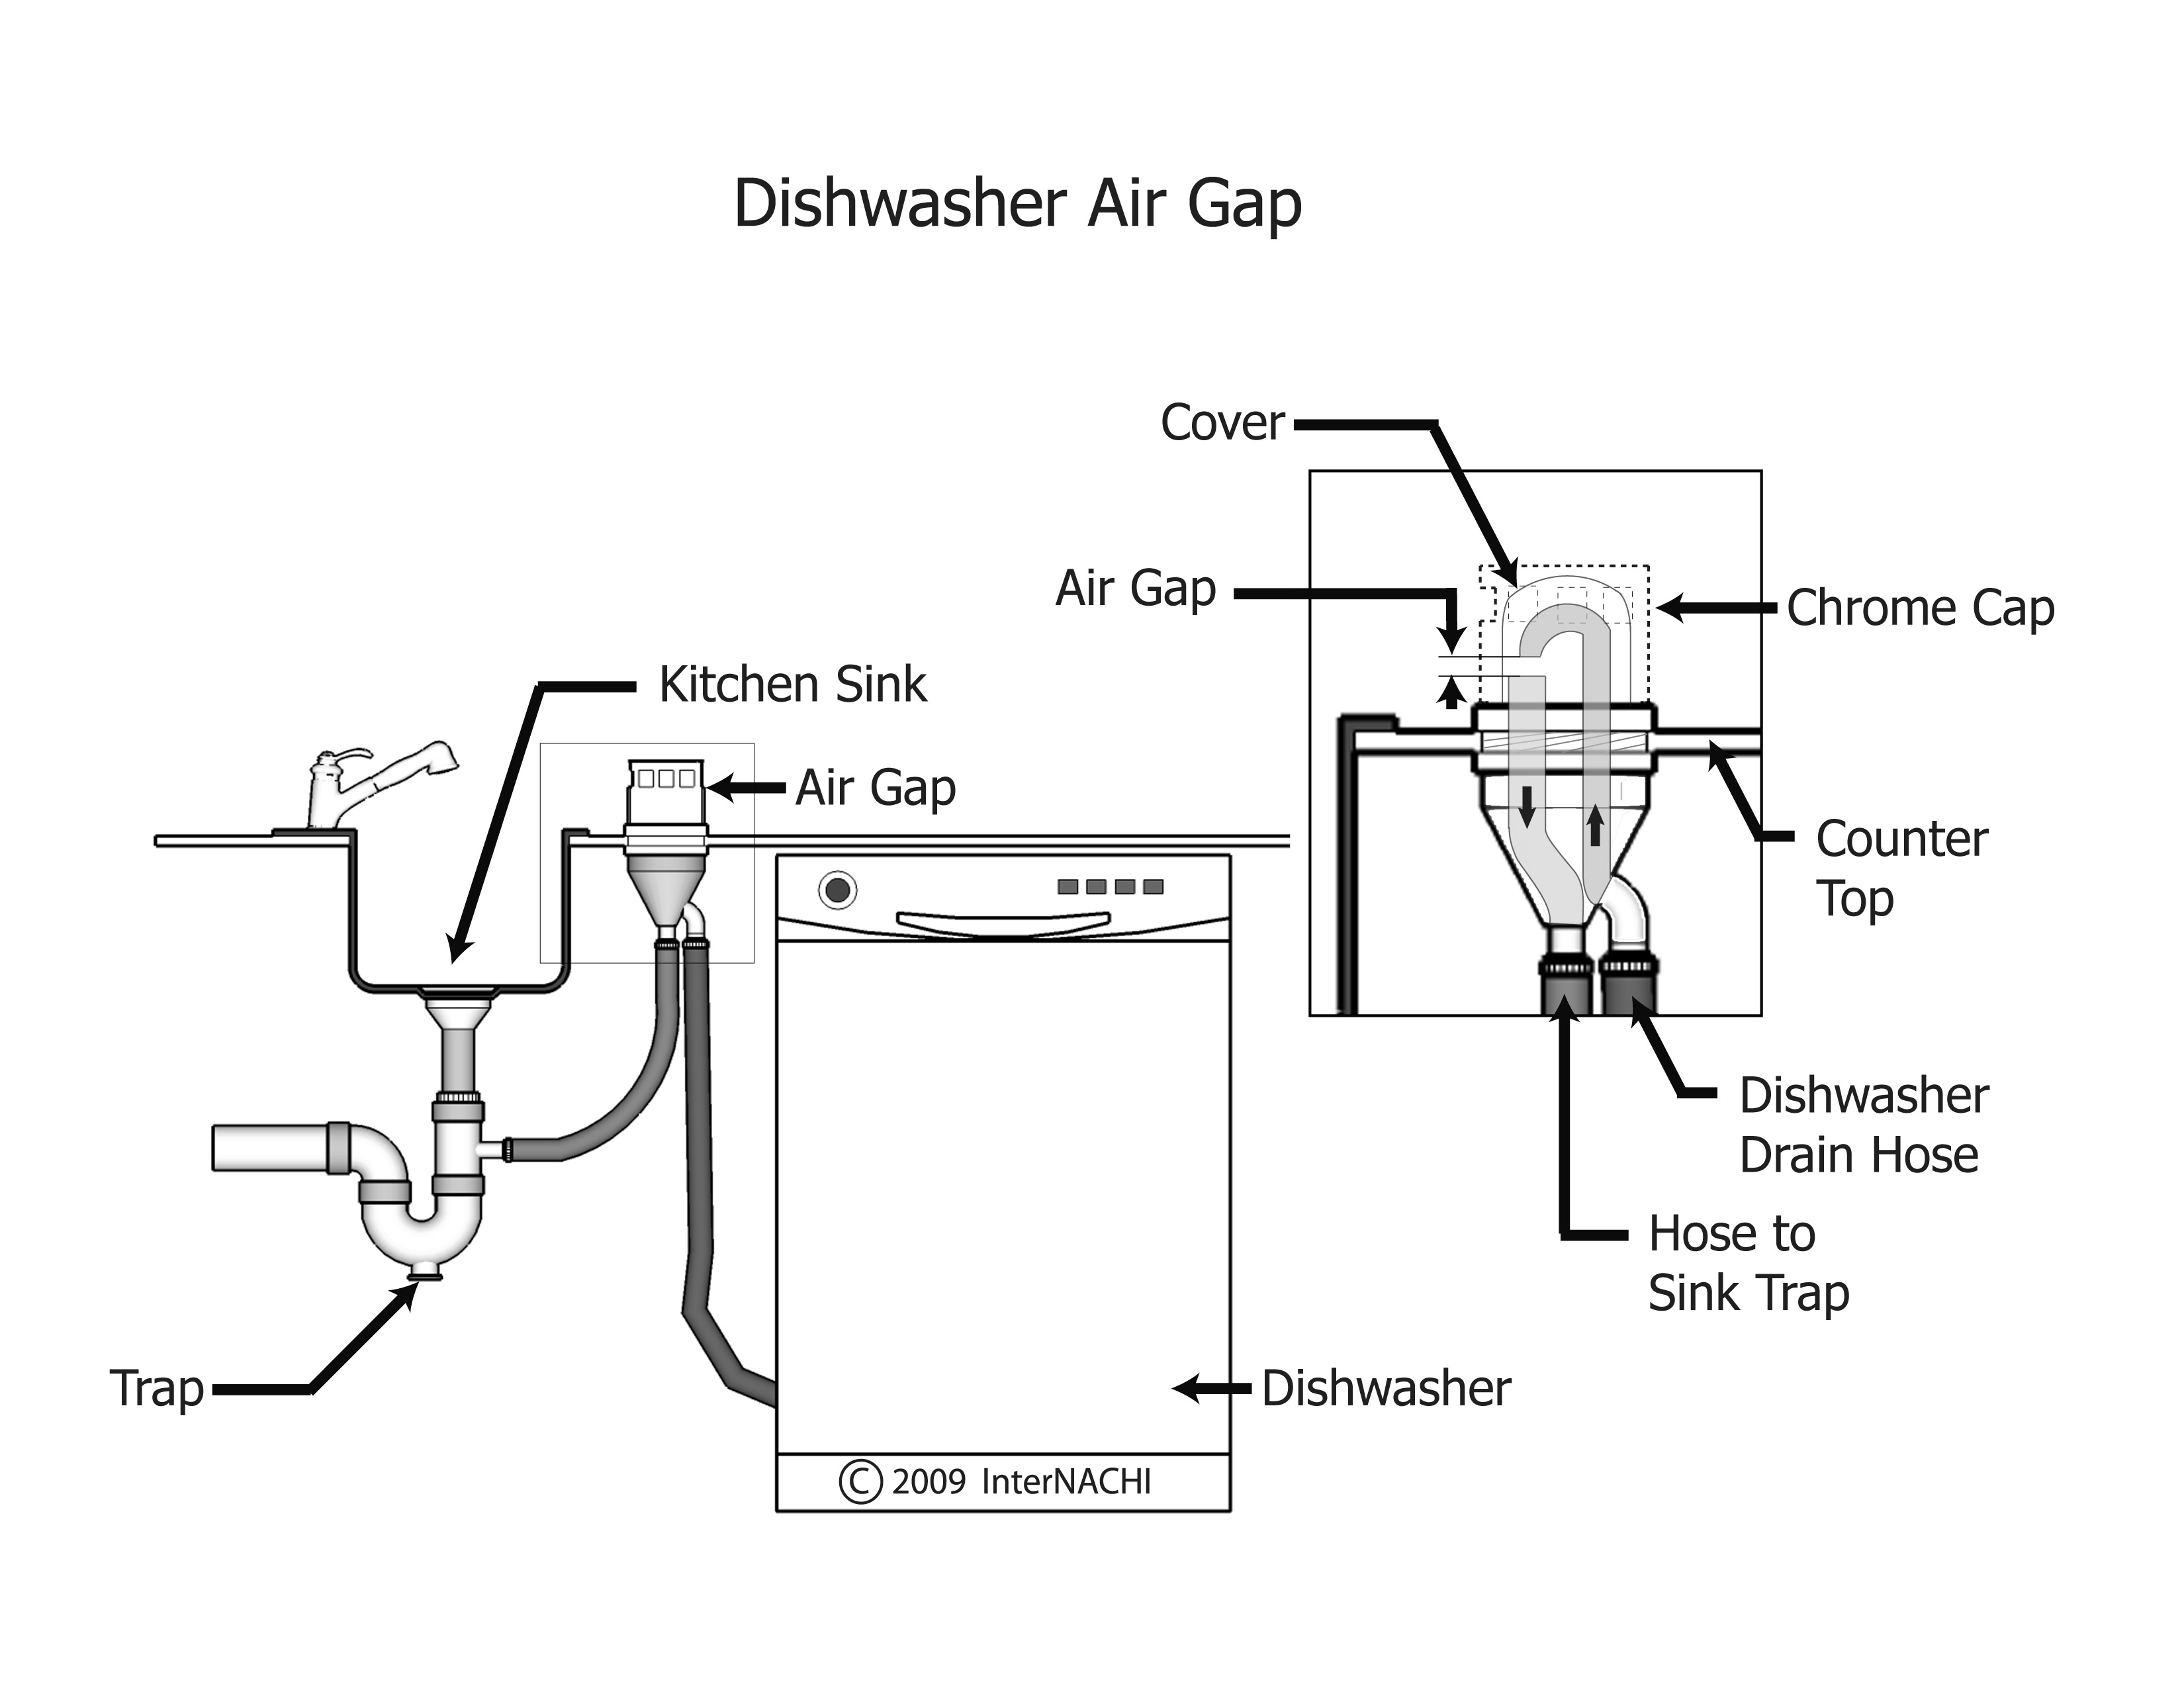 Dishwasher air gap.